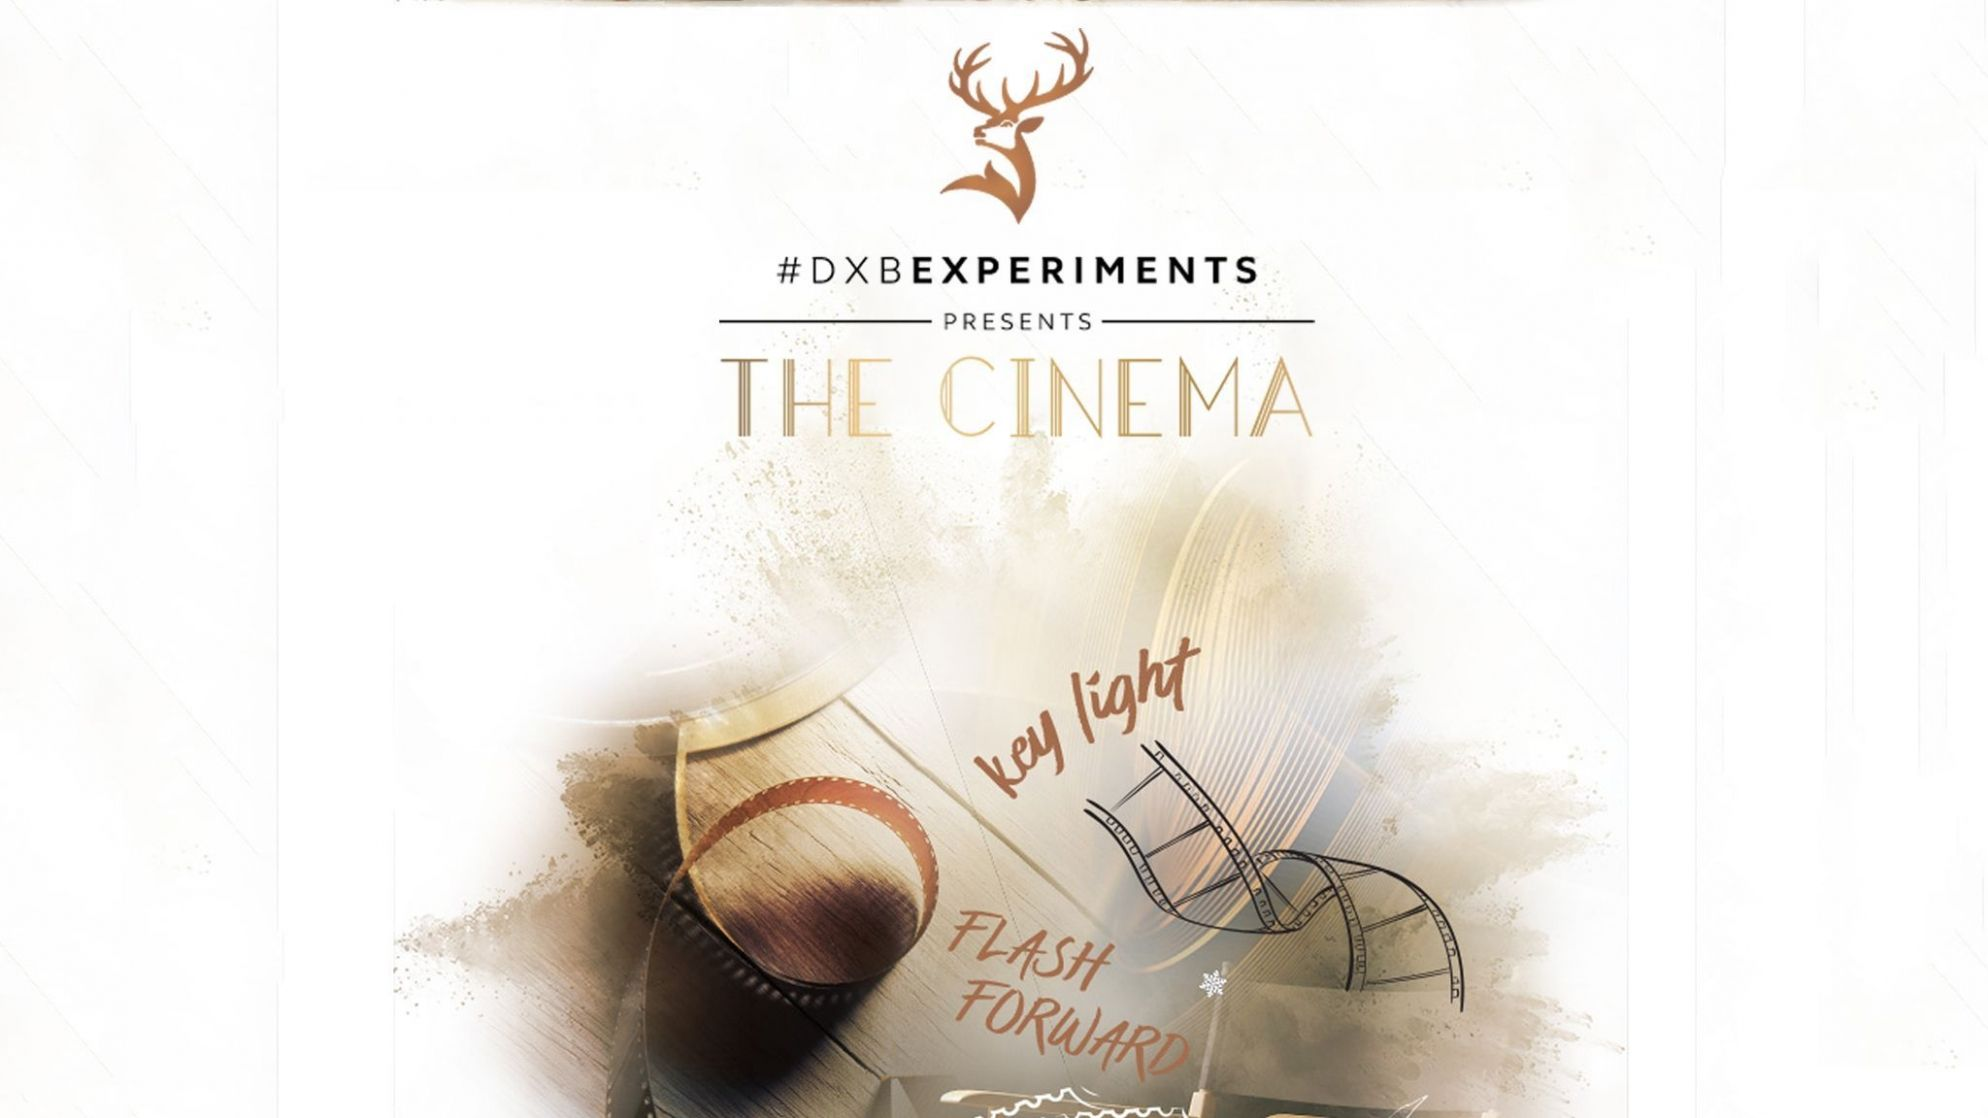 #DXBExperiments presents The Cinema with Al Khaima